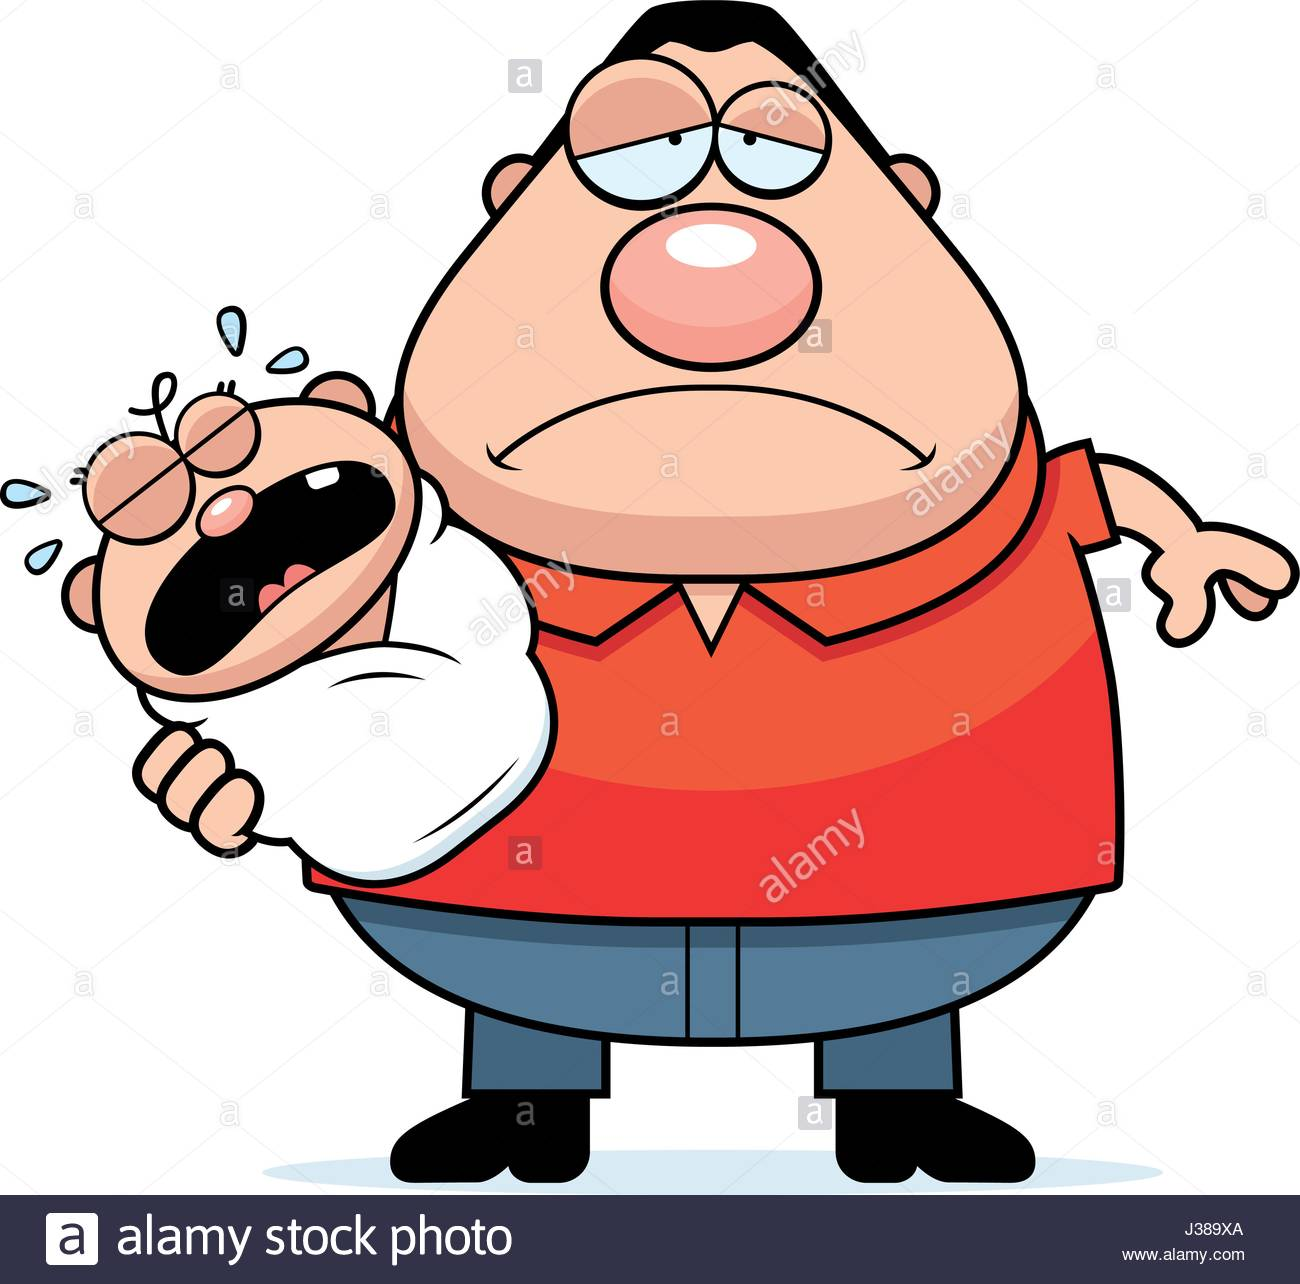 1300x1284 A Cartoon Illustration Of A Dad With A Crying Baby Looking Tired